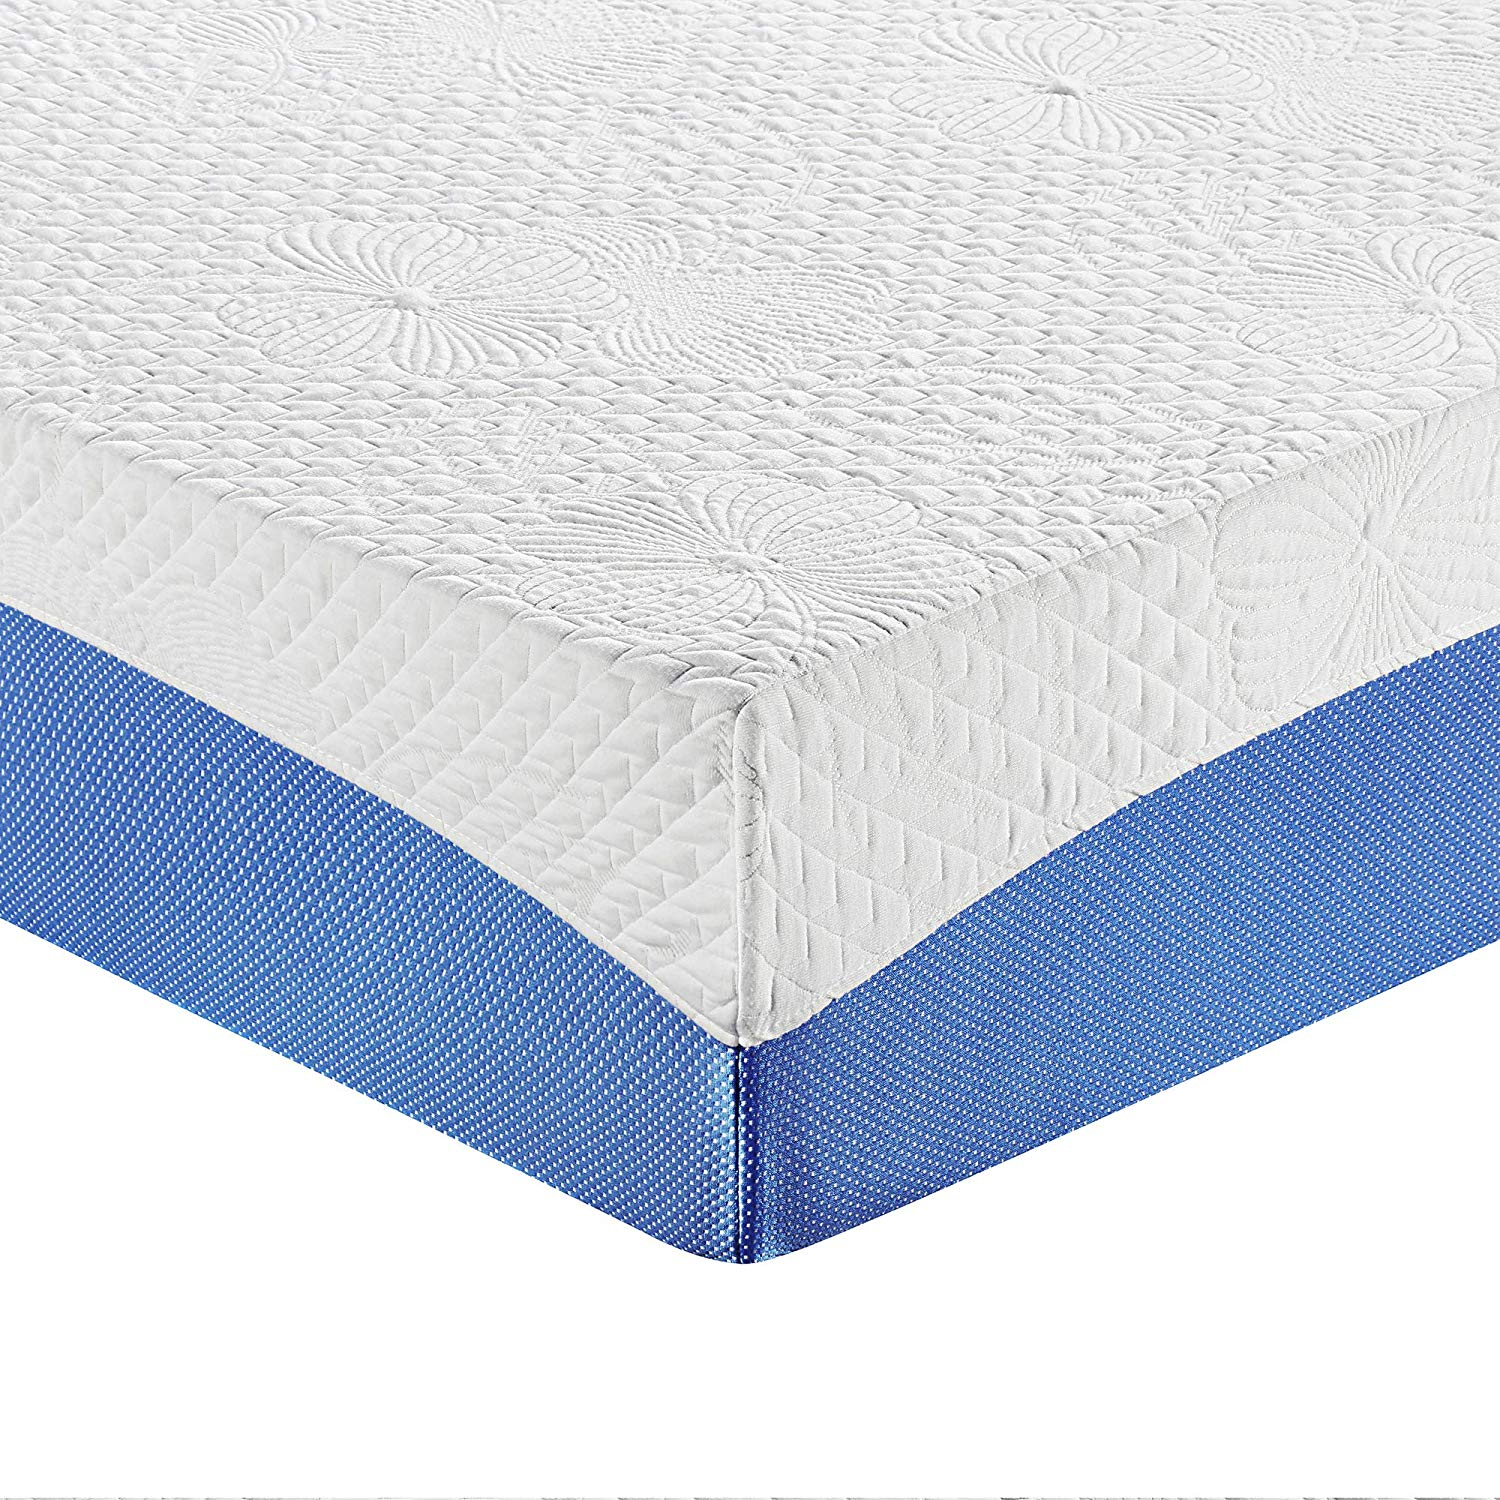 "Dream foam Bedding Chill 14"" Gel Memory Foam Mattress"